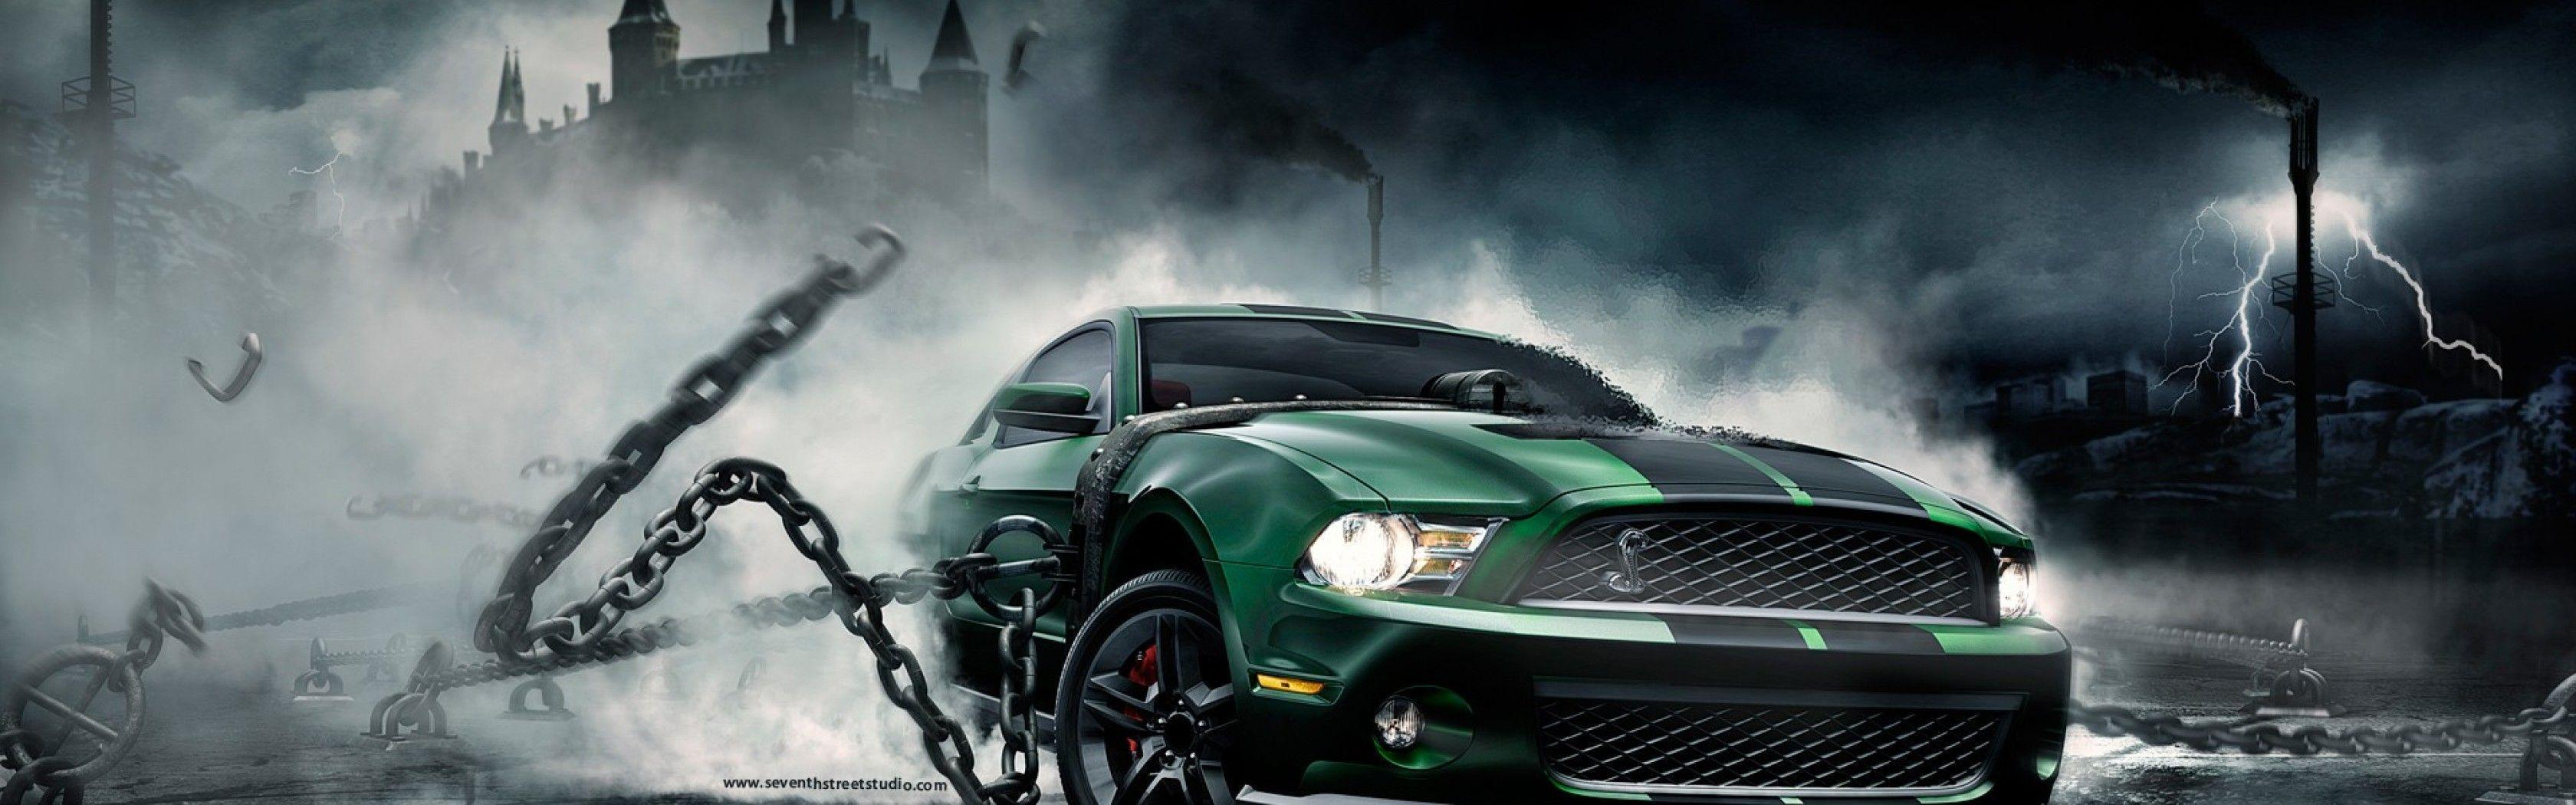 Mustang Wallpaper For Android HD Wallpaper Pictures | Top Vehicle ...